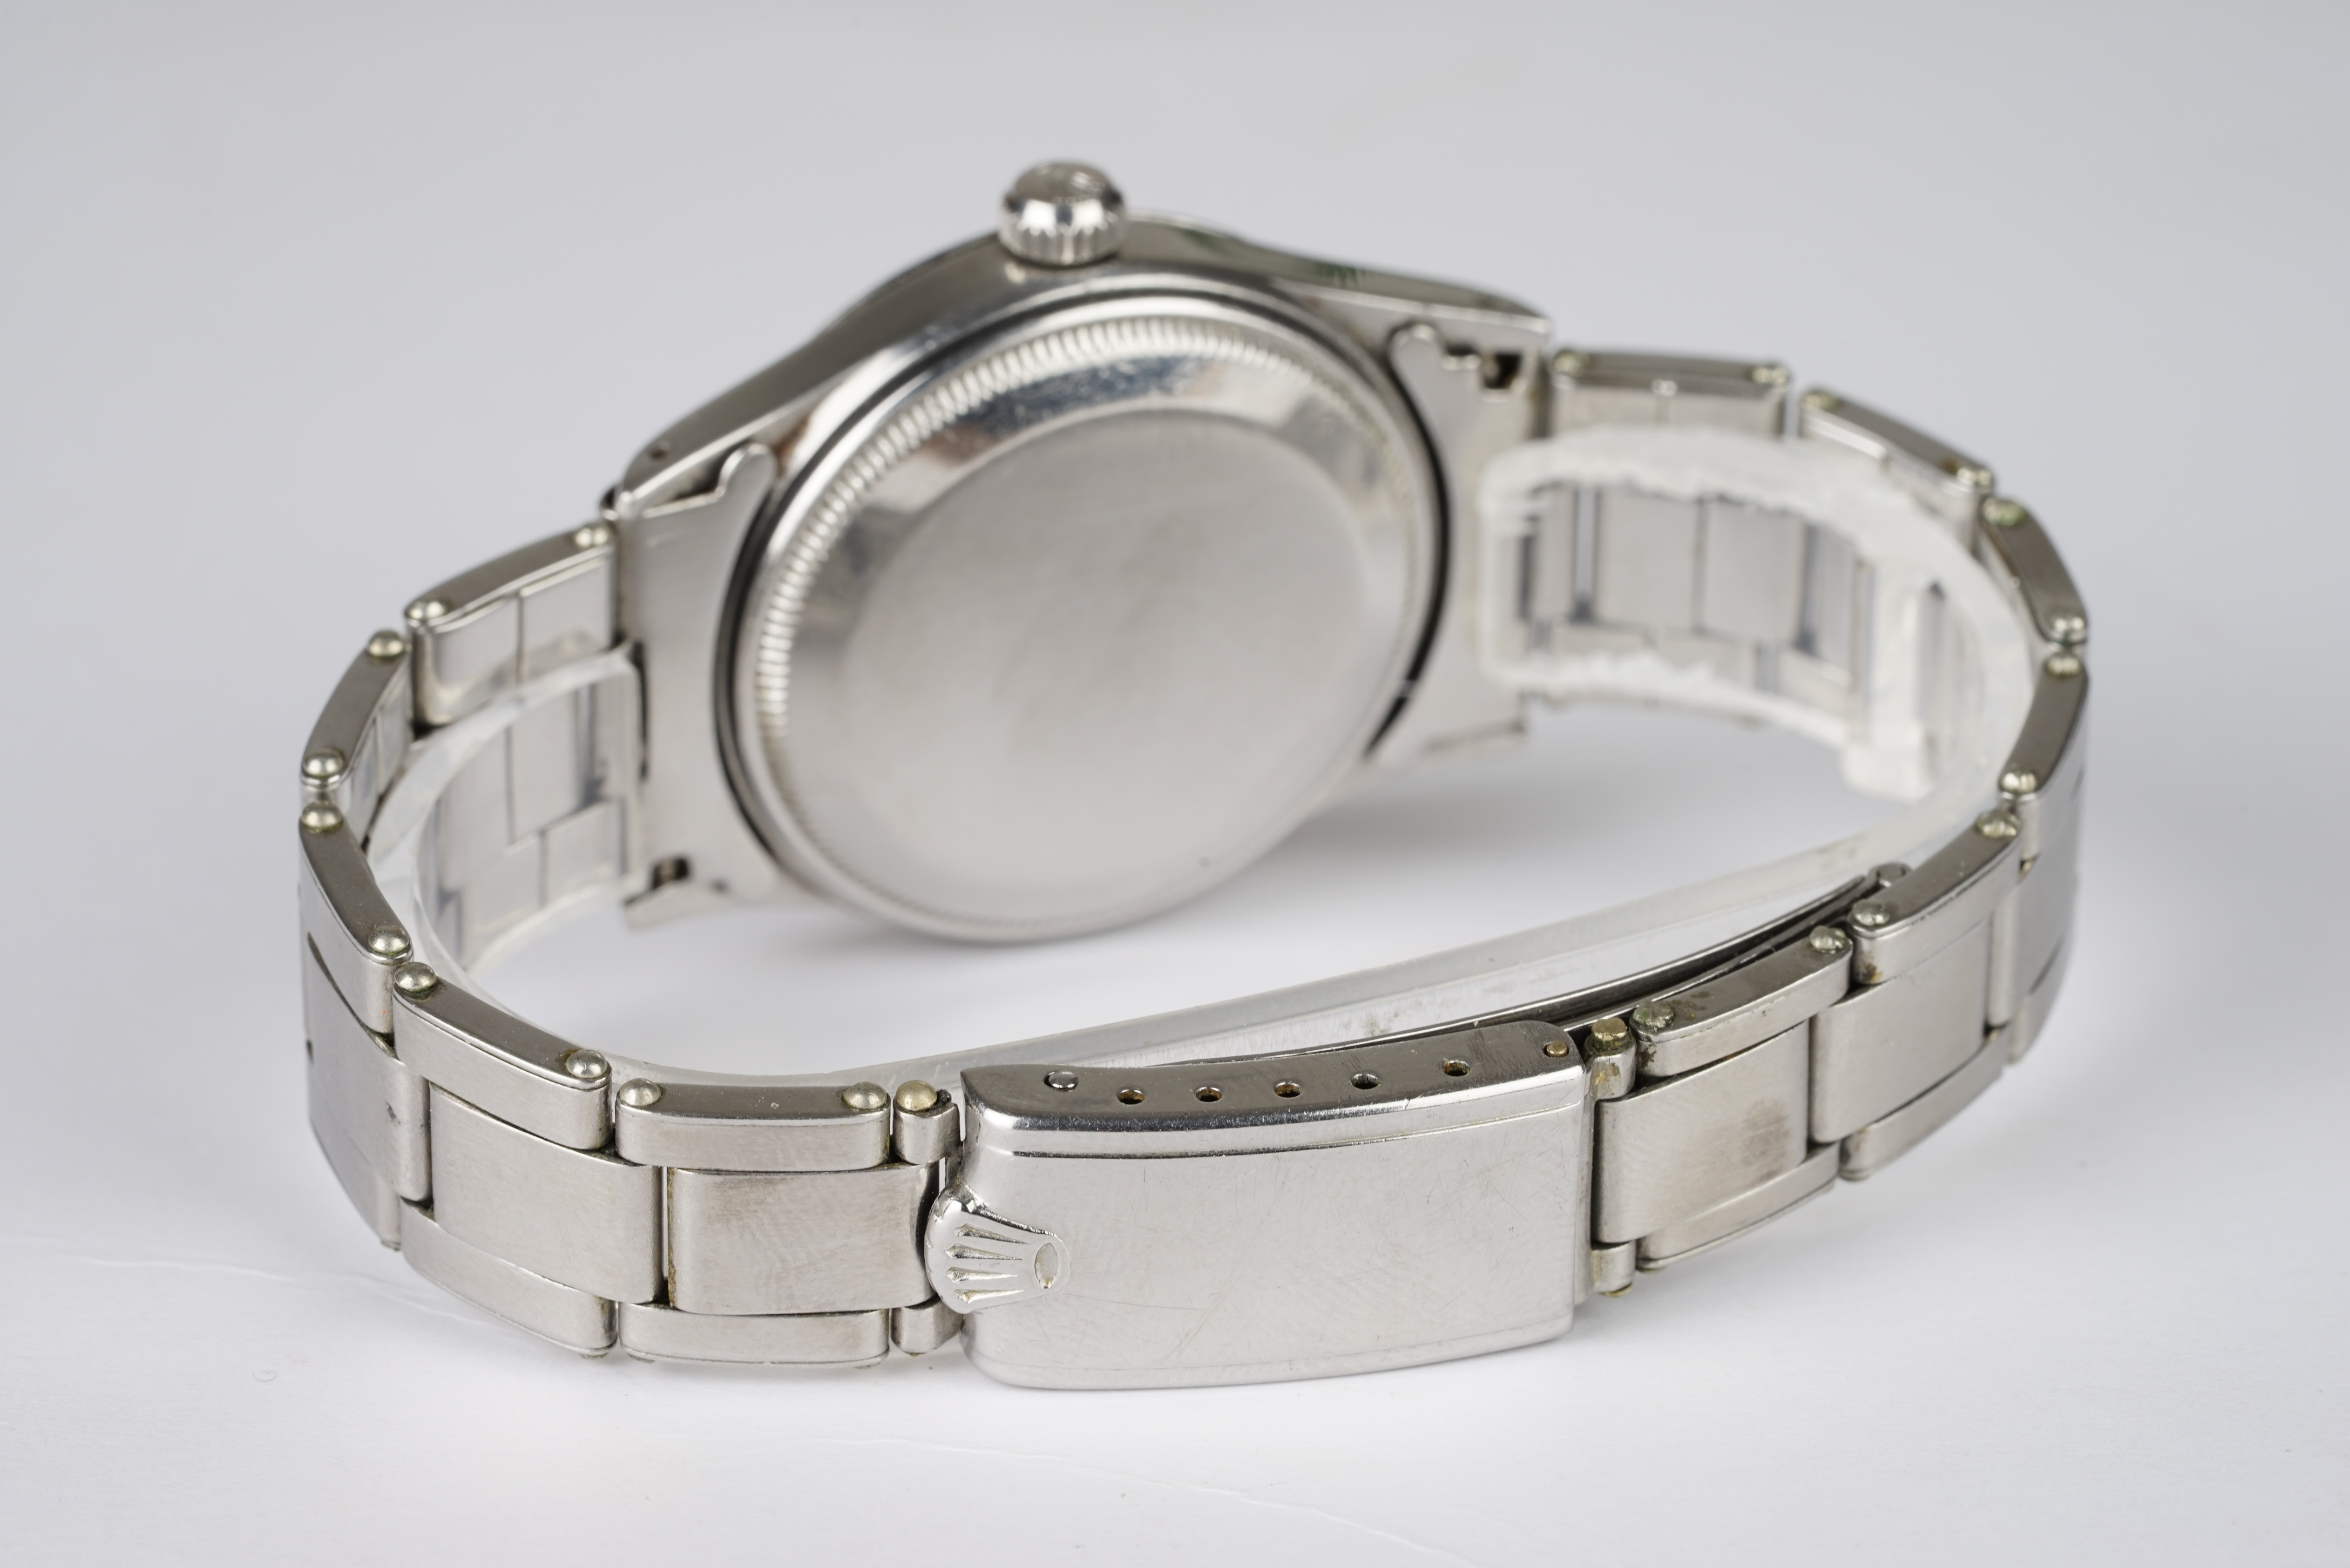 RARE GENTLEMENS ROLEX OYSTER PERPETUAL 'DEPTH RATING' 50M = 165FT WRISTWATCH REF. 6532 CIRCA 1955, - Image 4 of 4